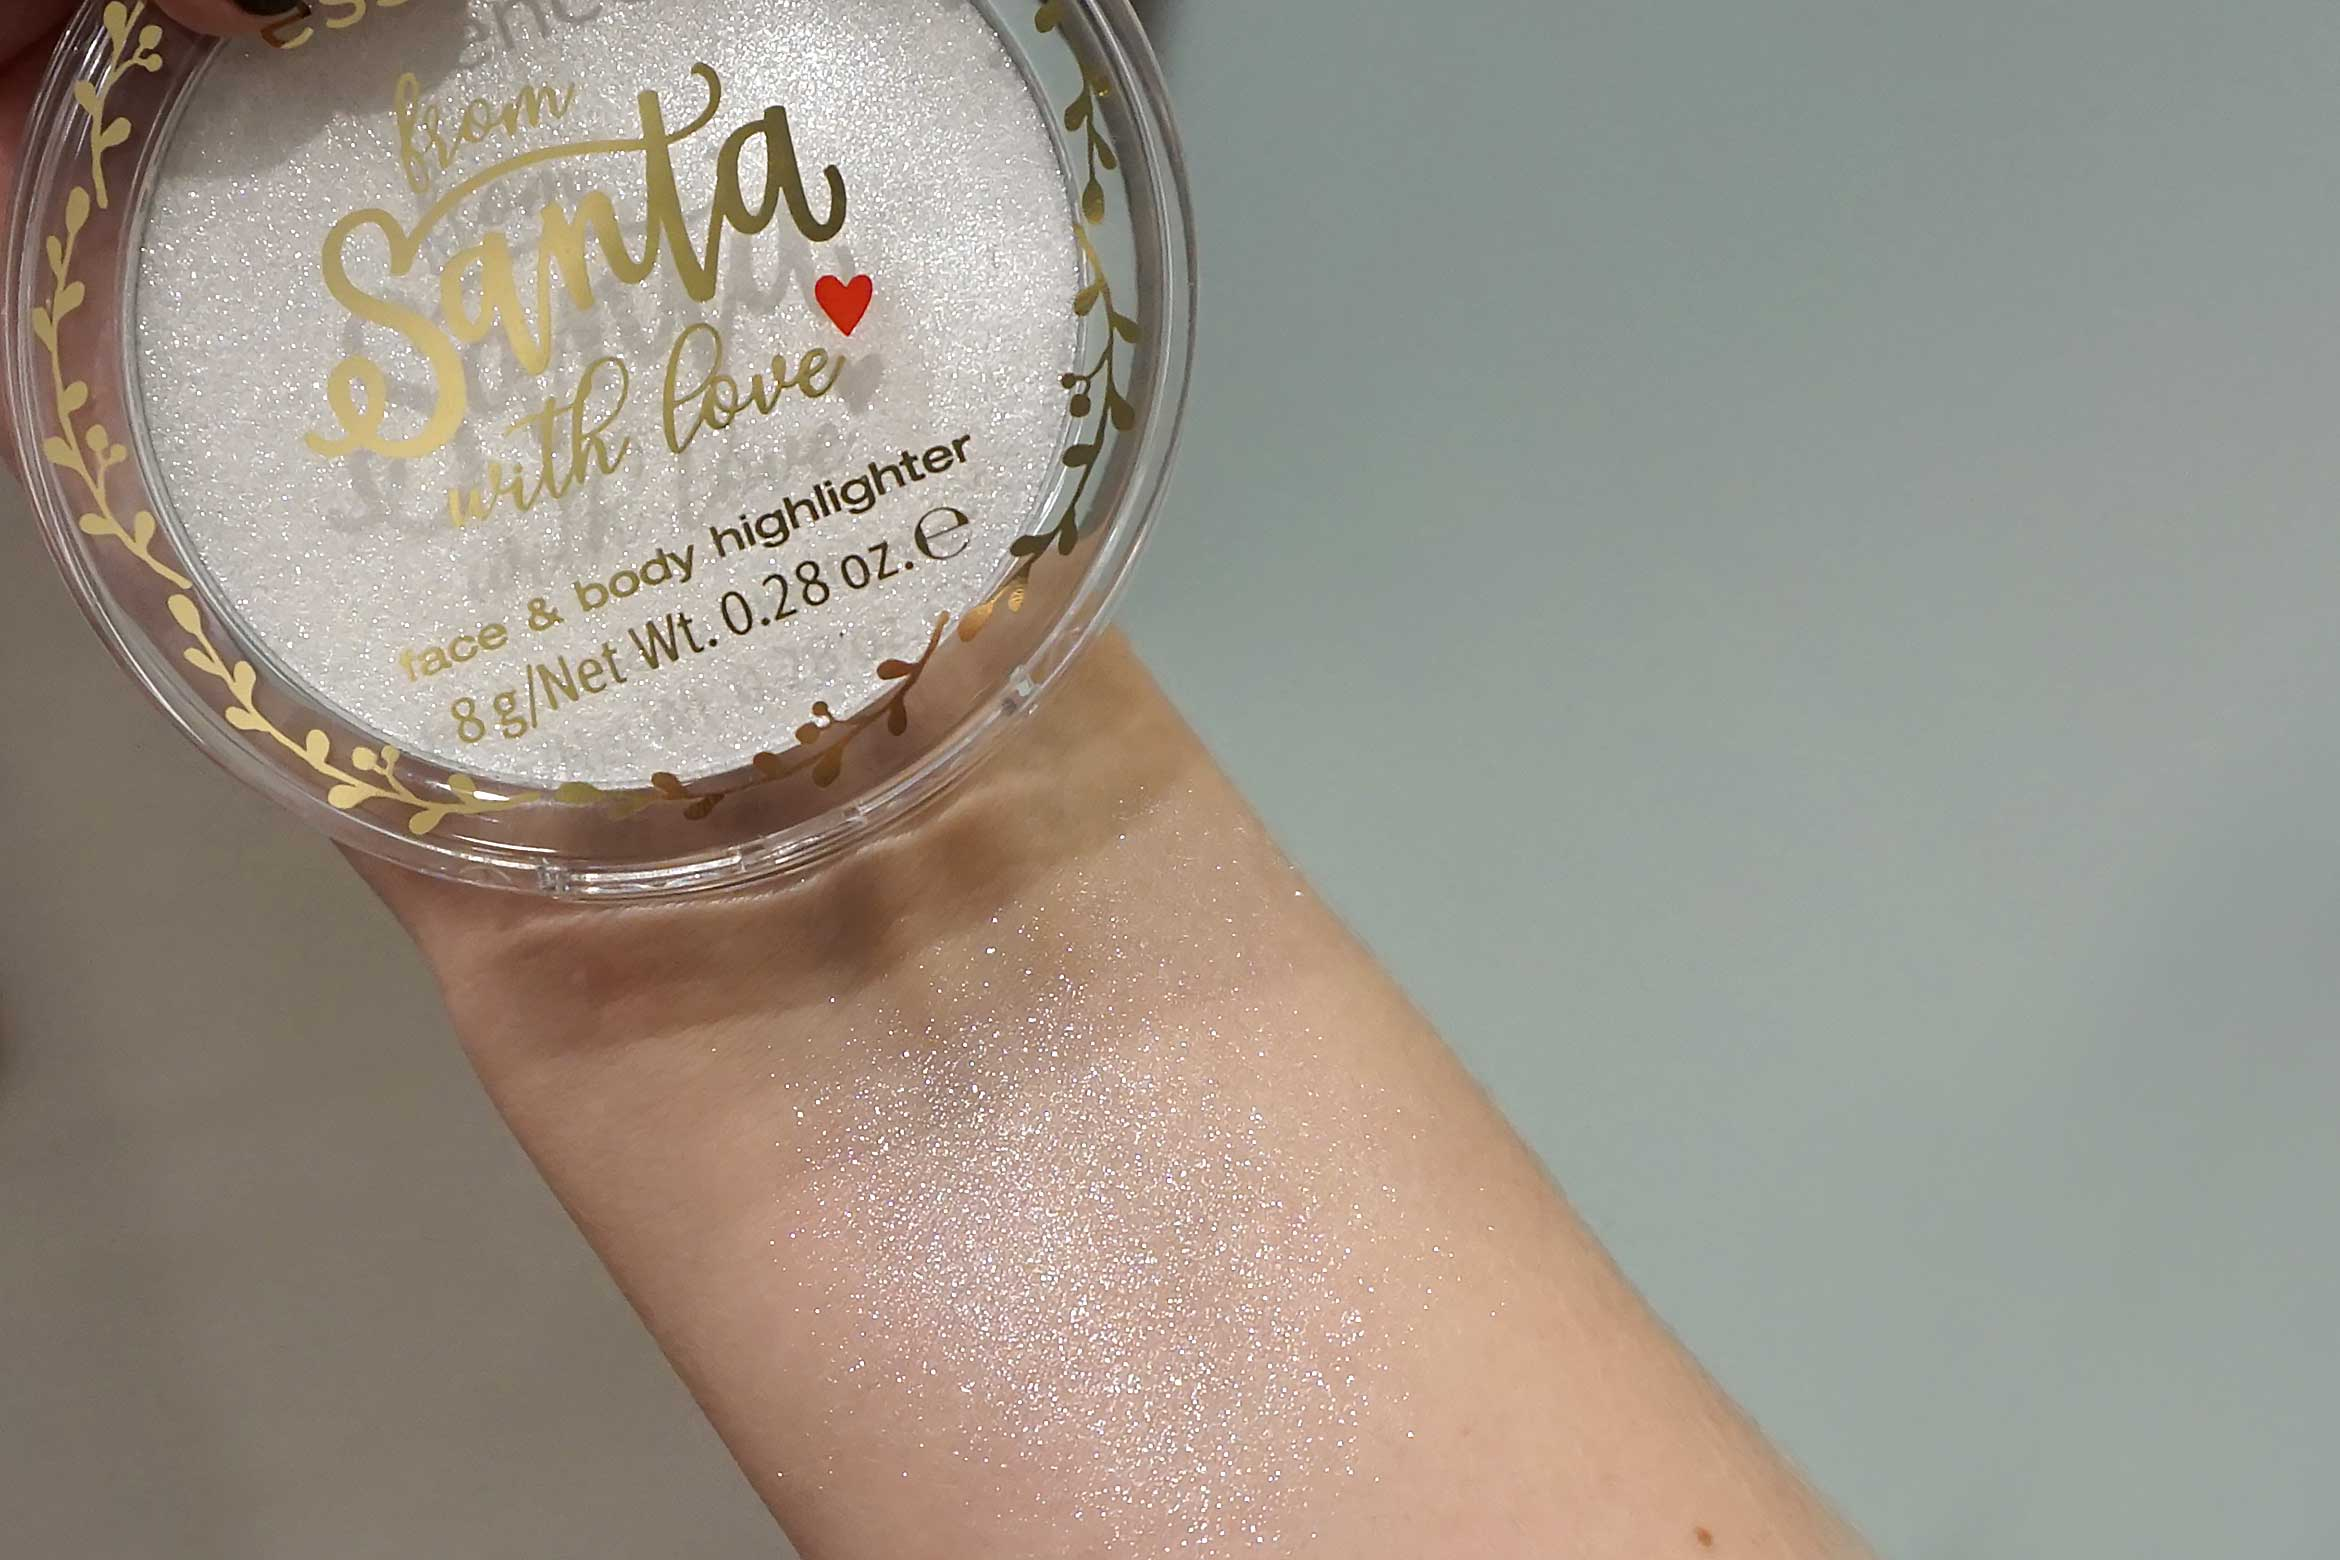 essence-from-santa-with-love-face-body-highlighter-review-2